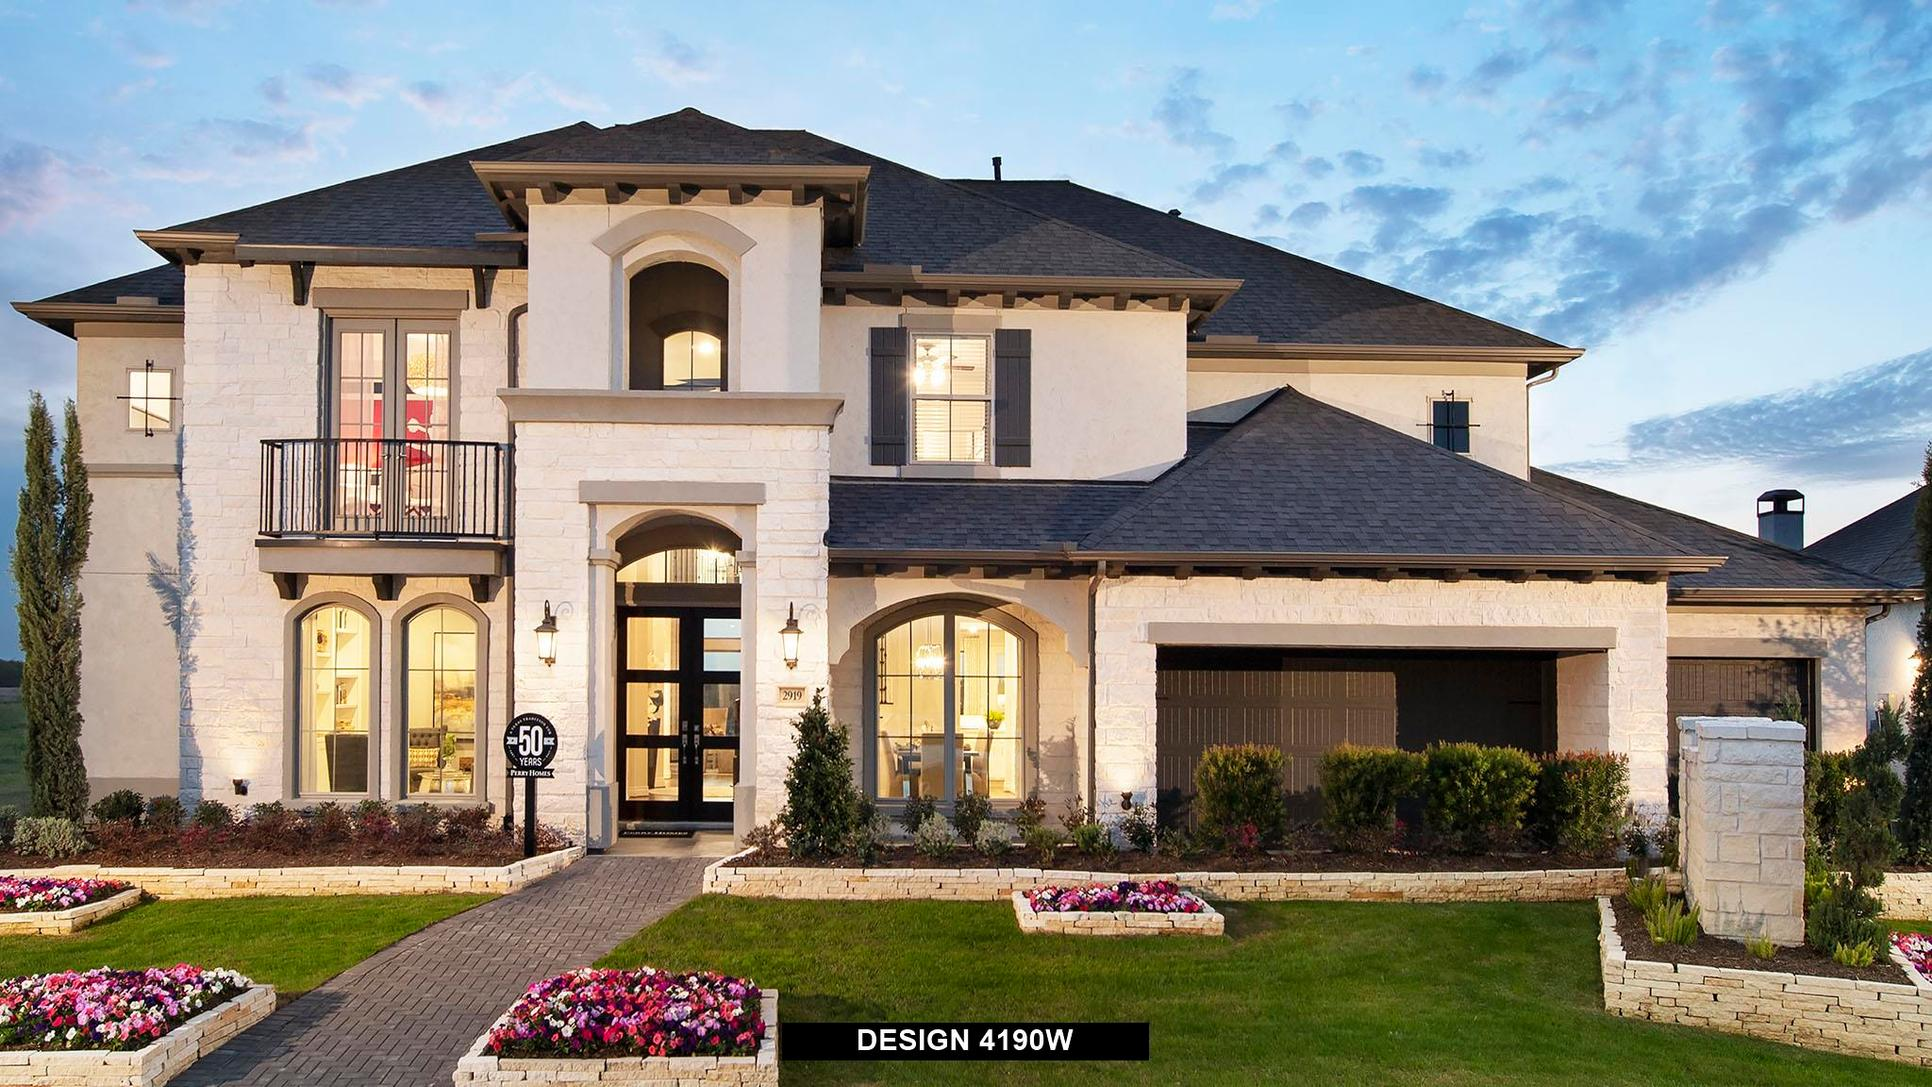 Plan 4190W:Representative photo.  Features and specifications may vary by community.